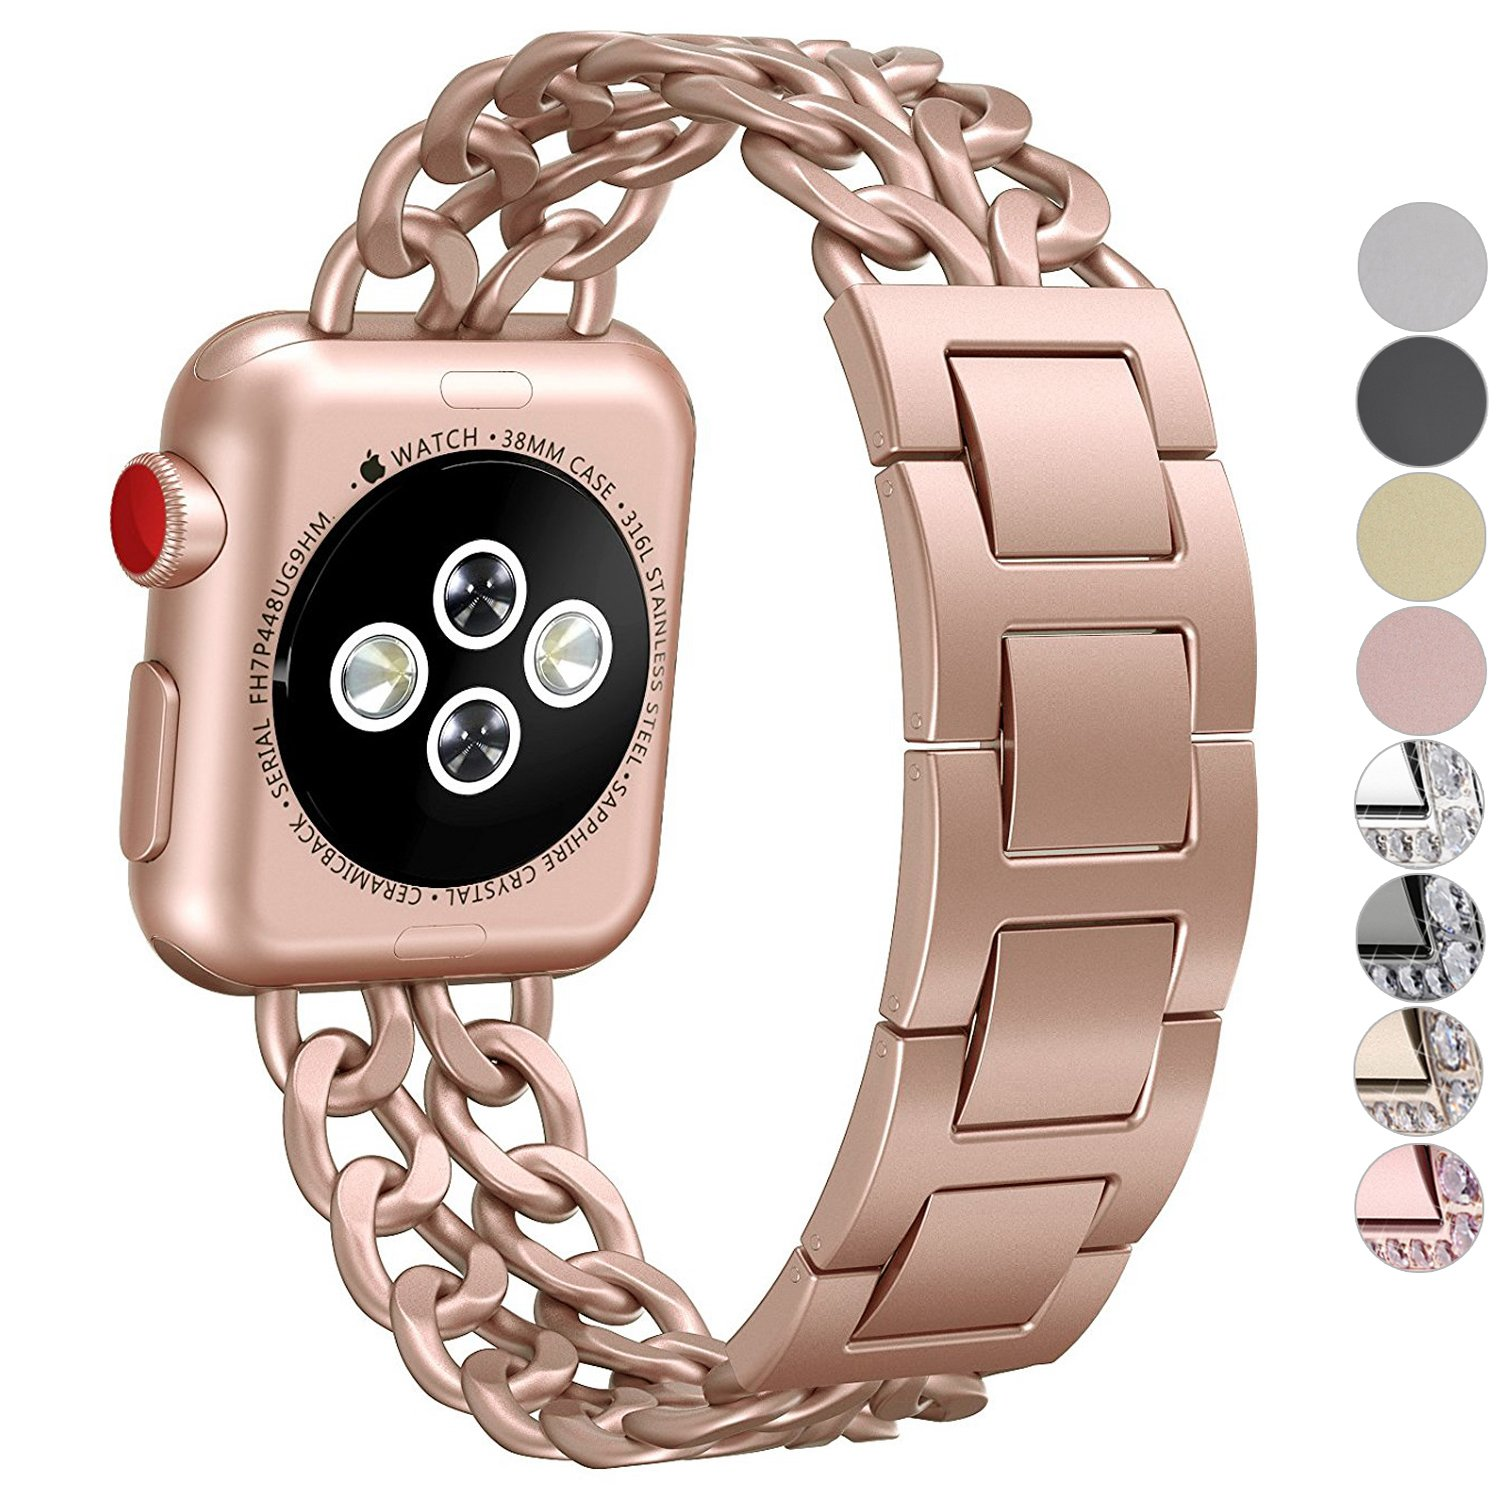 NO1seller Top Stainless Steel Metal Cowboy Style Watch Band Bracelet Strap for Apple Watch Series 3, Series 2, Series 1, Small and Large Size, For Women and Men, Apple Watch Series 3 Gold - 42mm